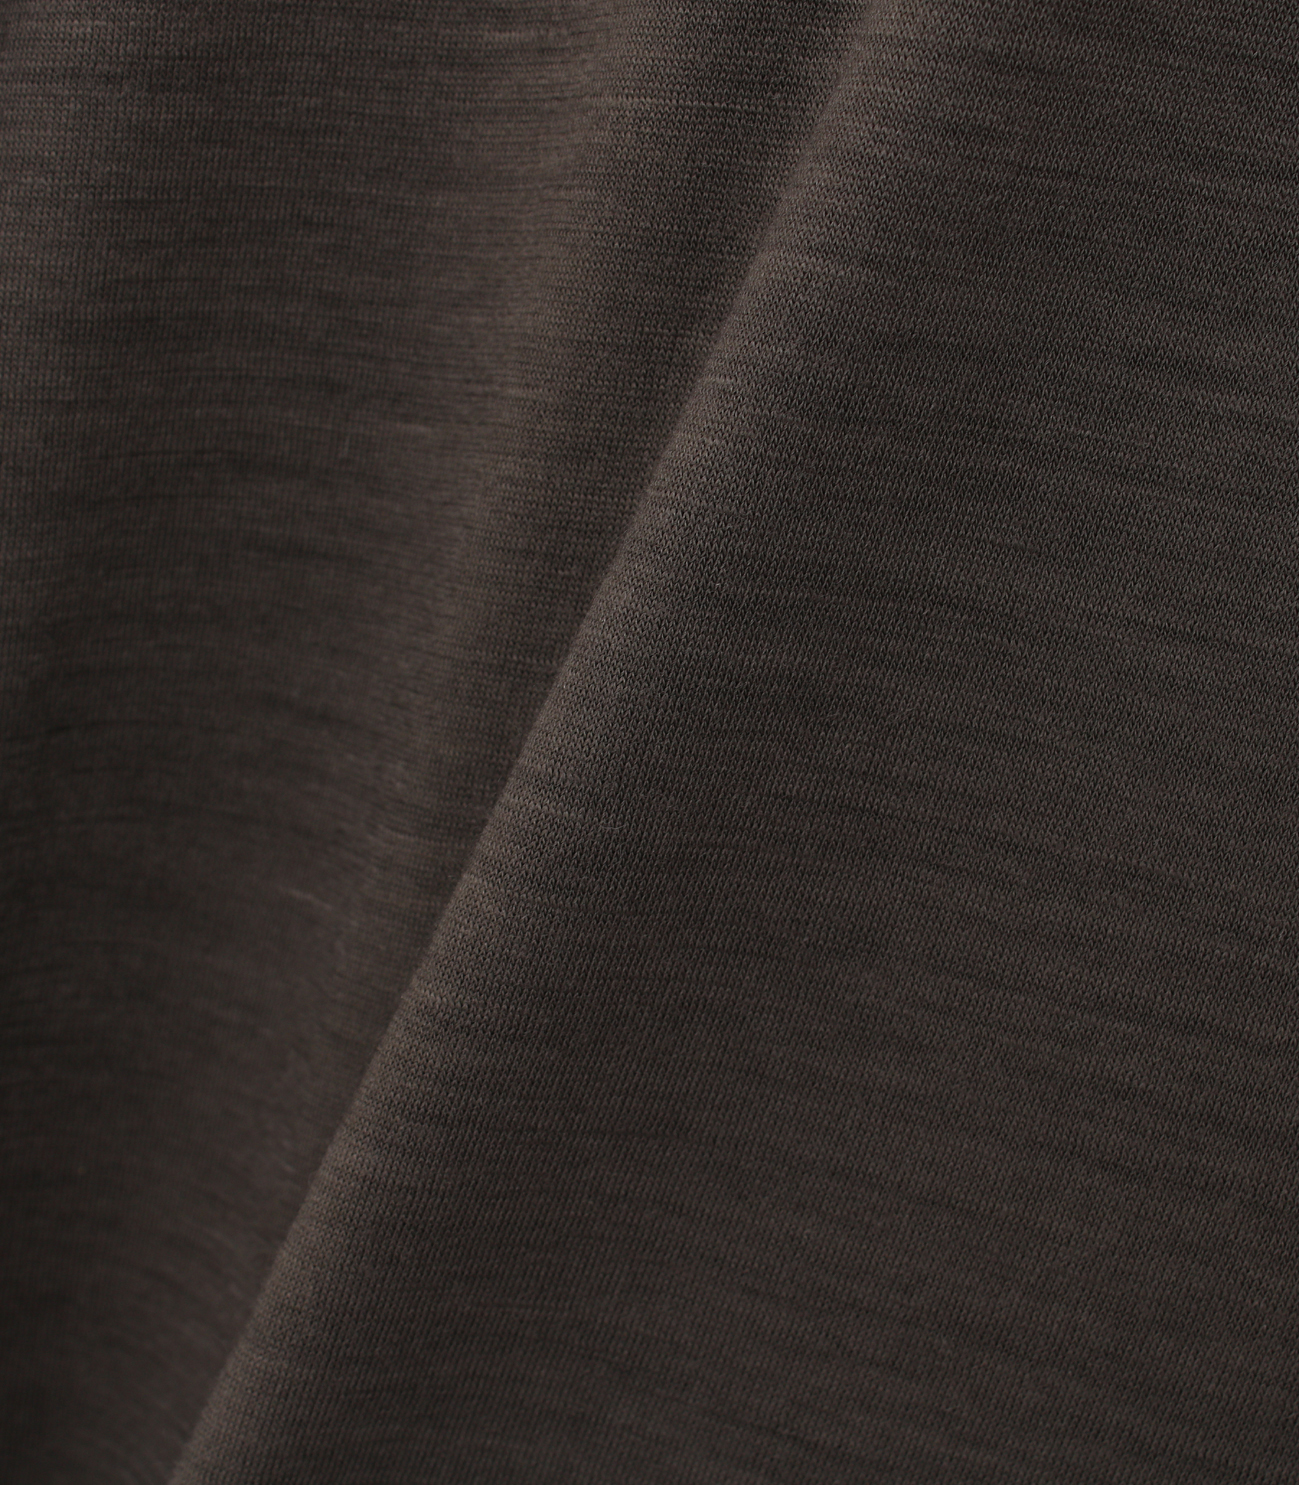 Washable silky dry jersey crewneck 詳細画像 brown 5